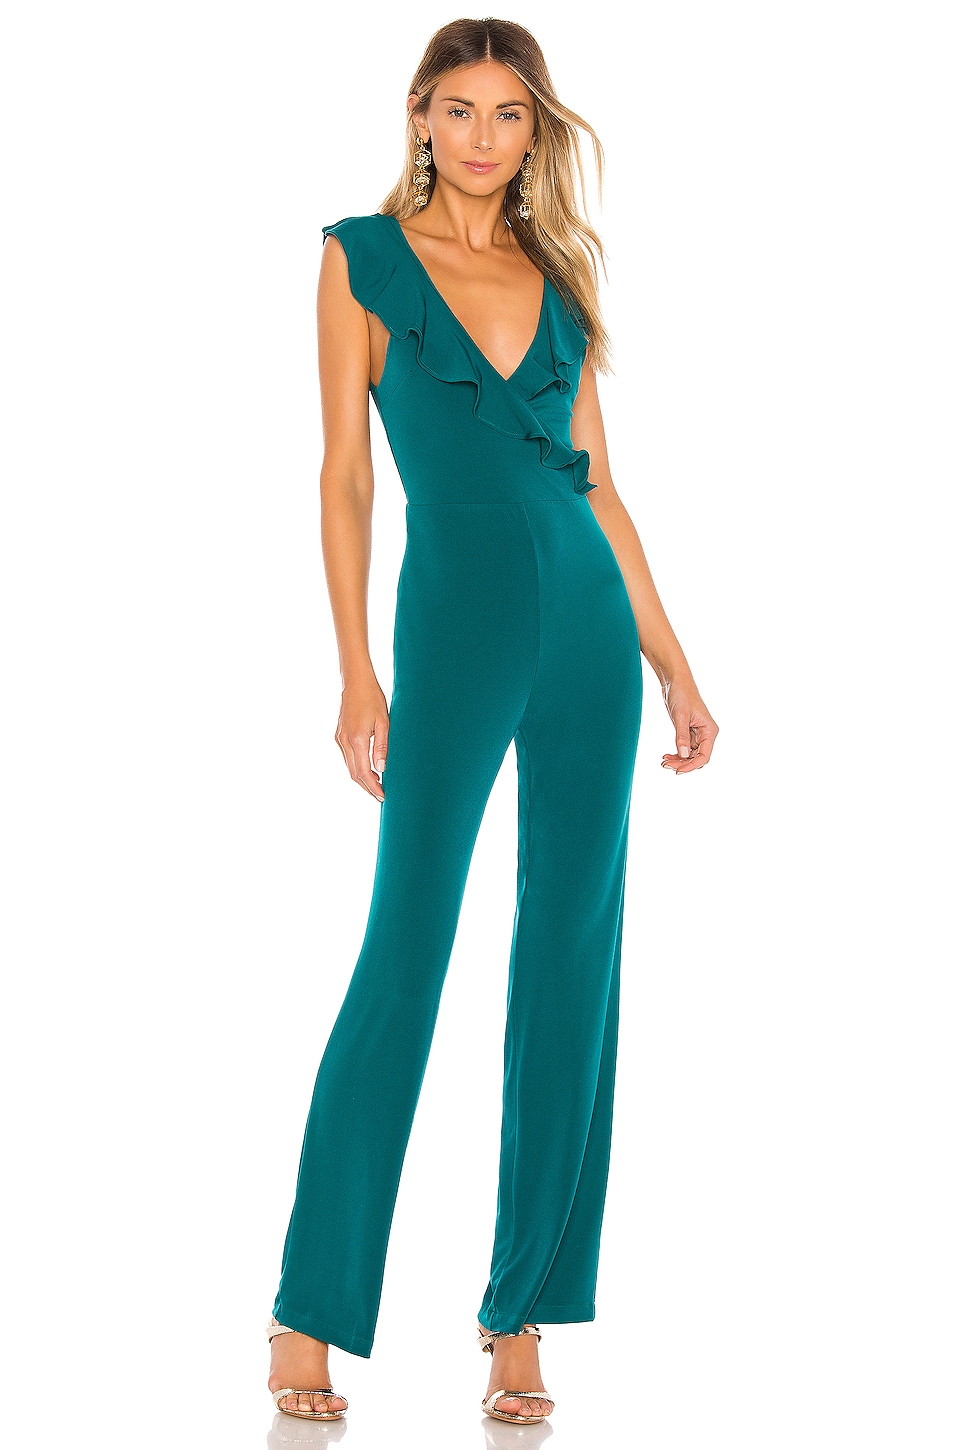 Lovers + Friends Keeley Jumpsuit in Teal